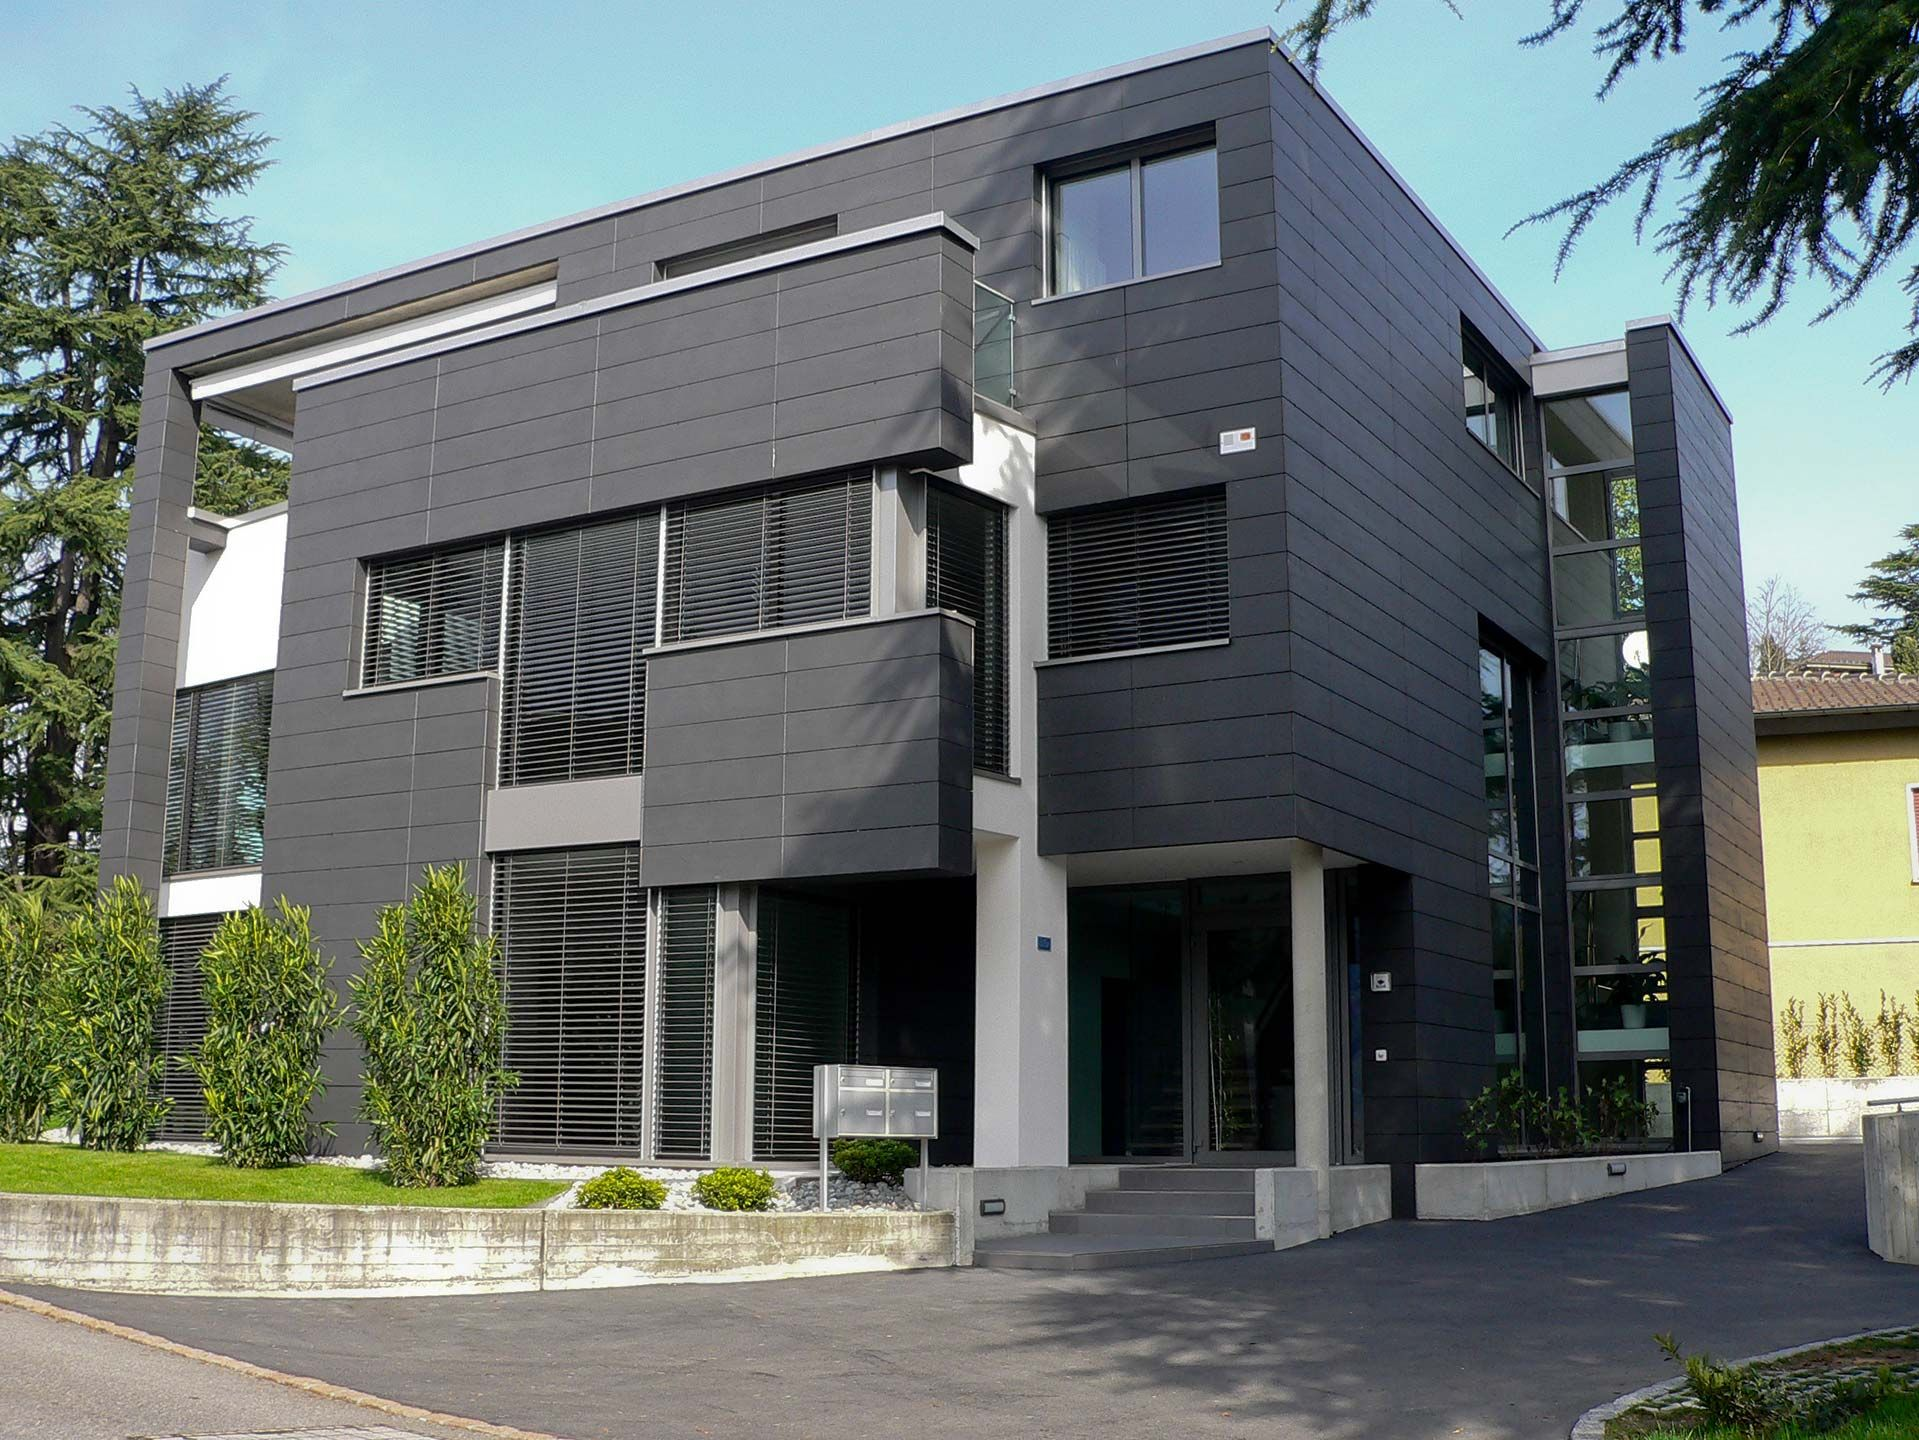 External Wall Insulation Of Residential Buildings Complex In Chiasso Architectural Coverings